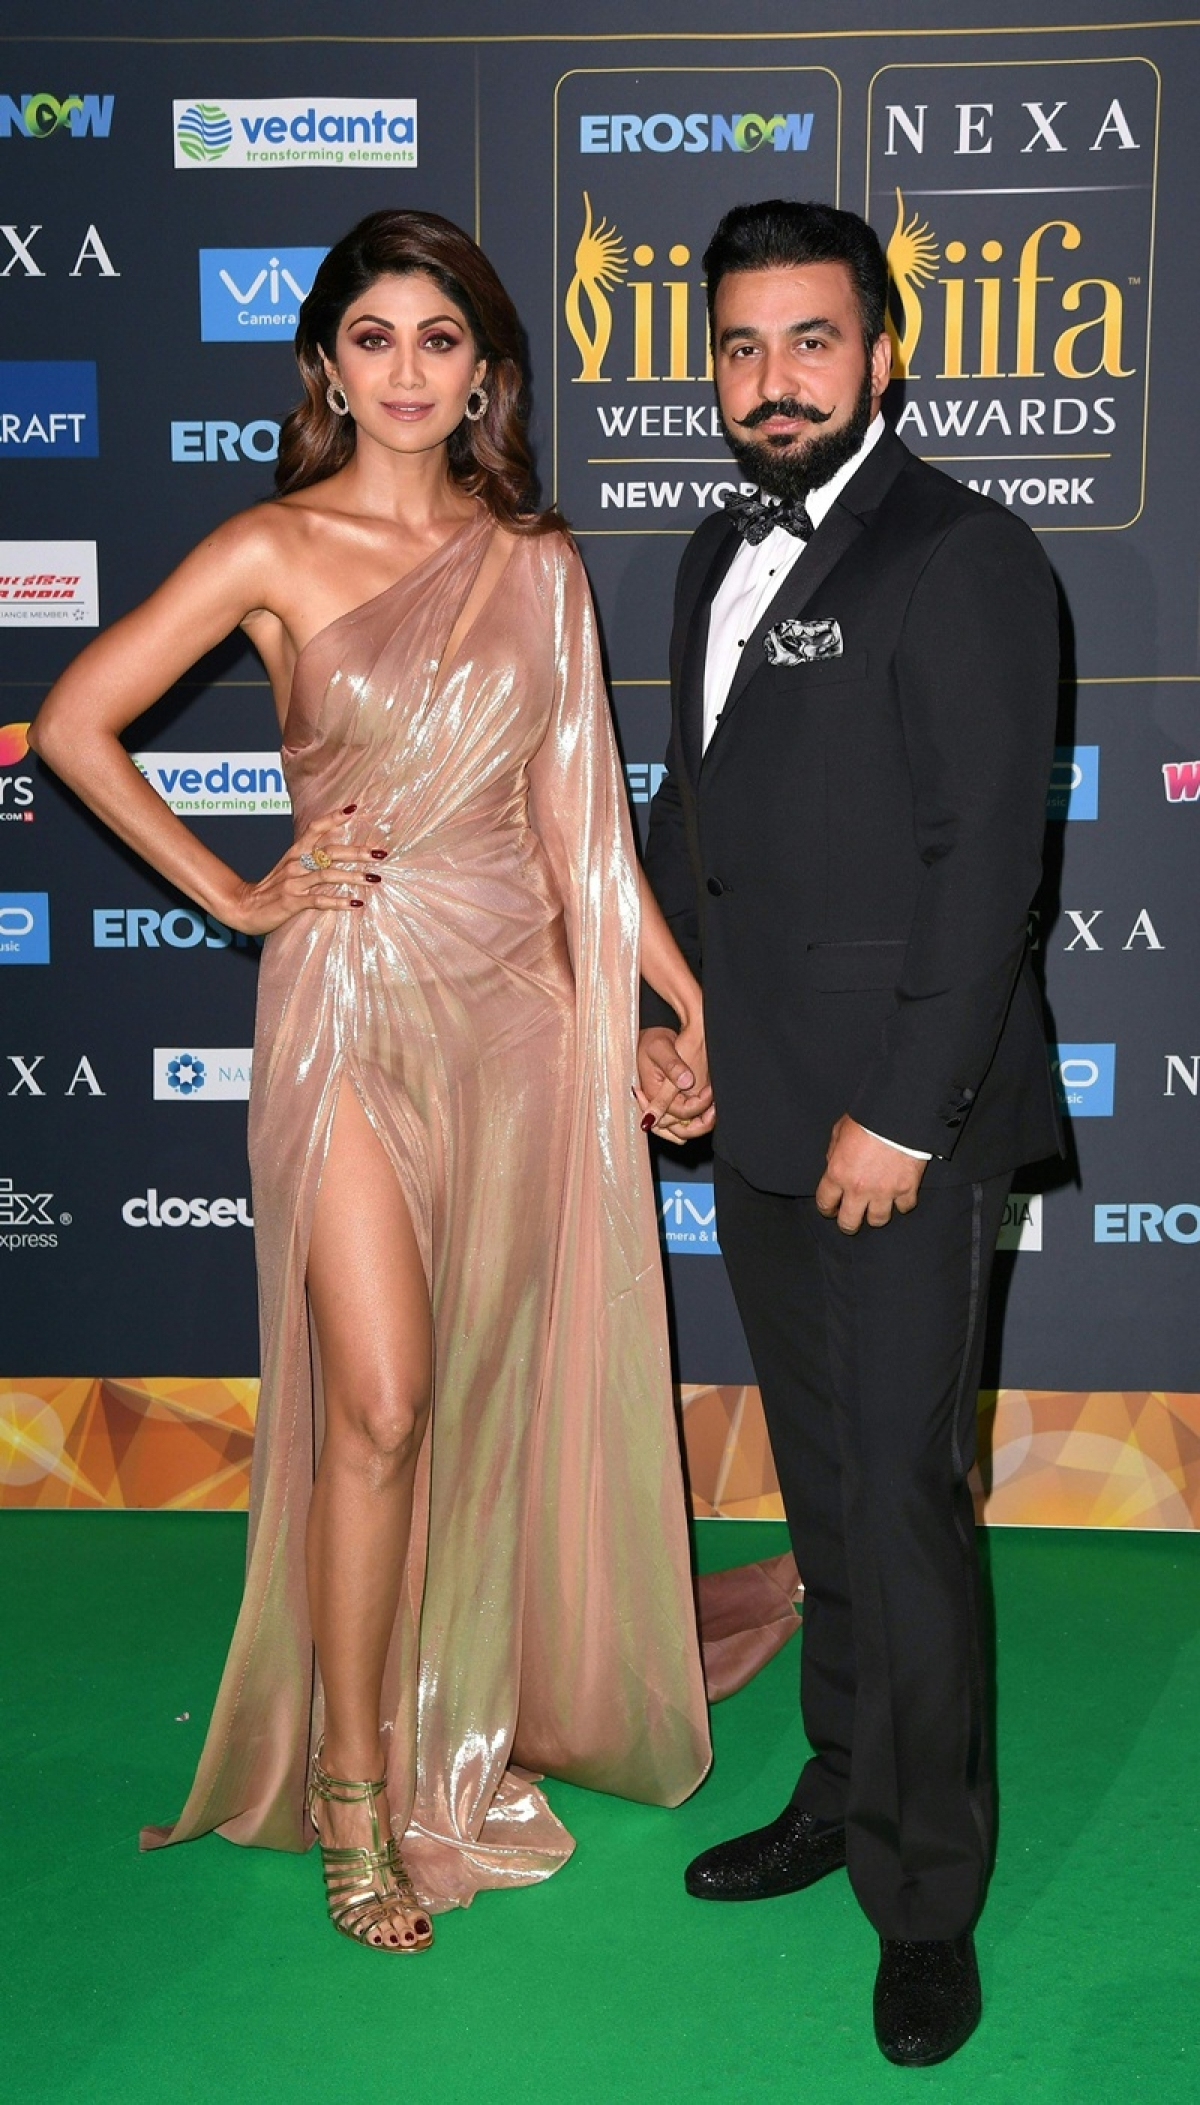 Bollywood Actress Shilpa Shetty arrives with Raj Kundra for the IIFA Awards July 15, 2017 at the MetLife Stadium in East Rutherford, New Jersey during the 18th International Indian Film Academy (IIFA) Festival. / AFP PHOTO / ANGELA WEISS